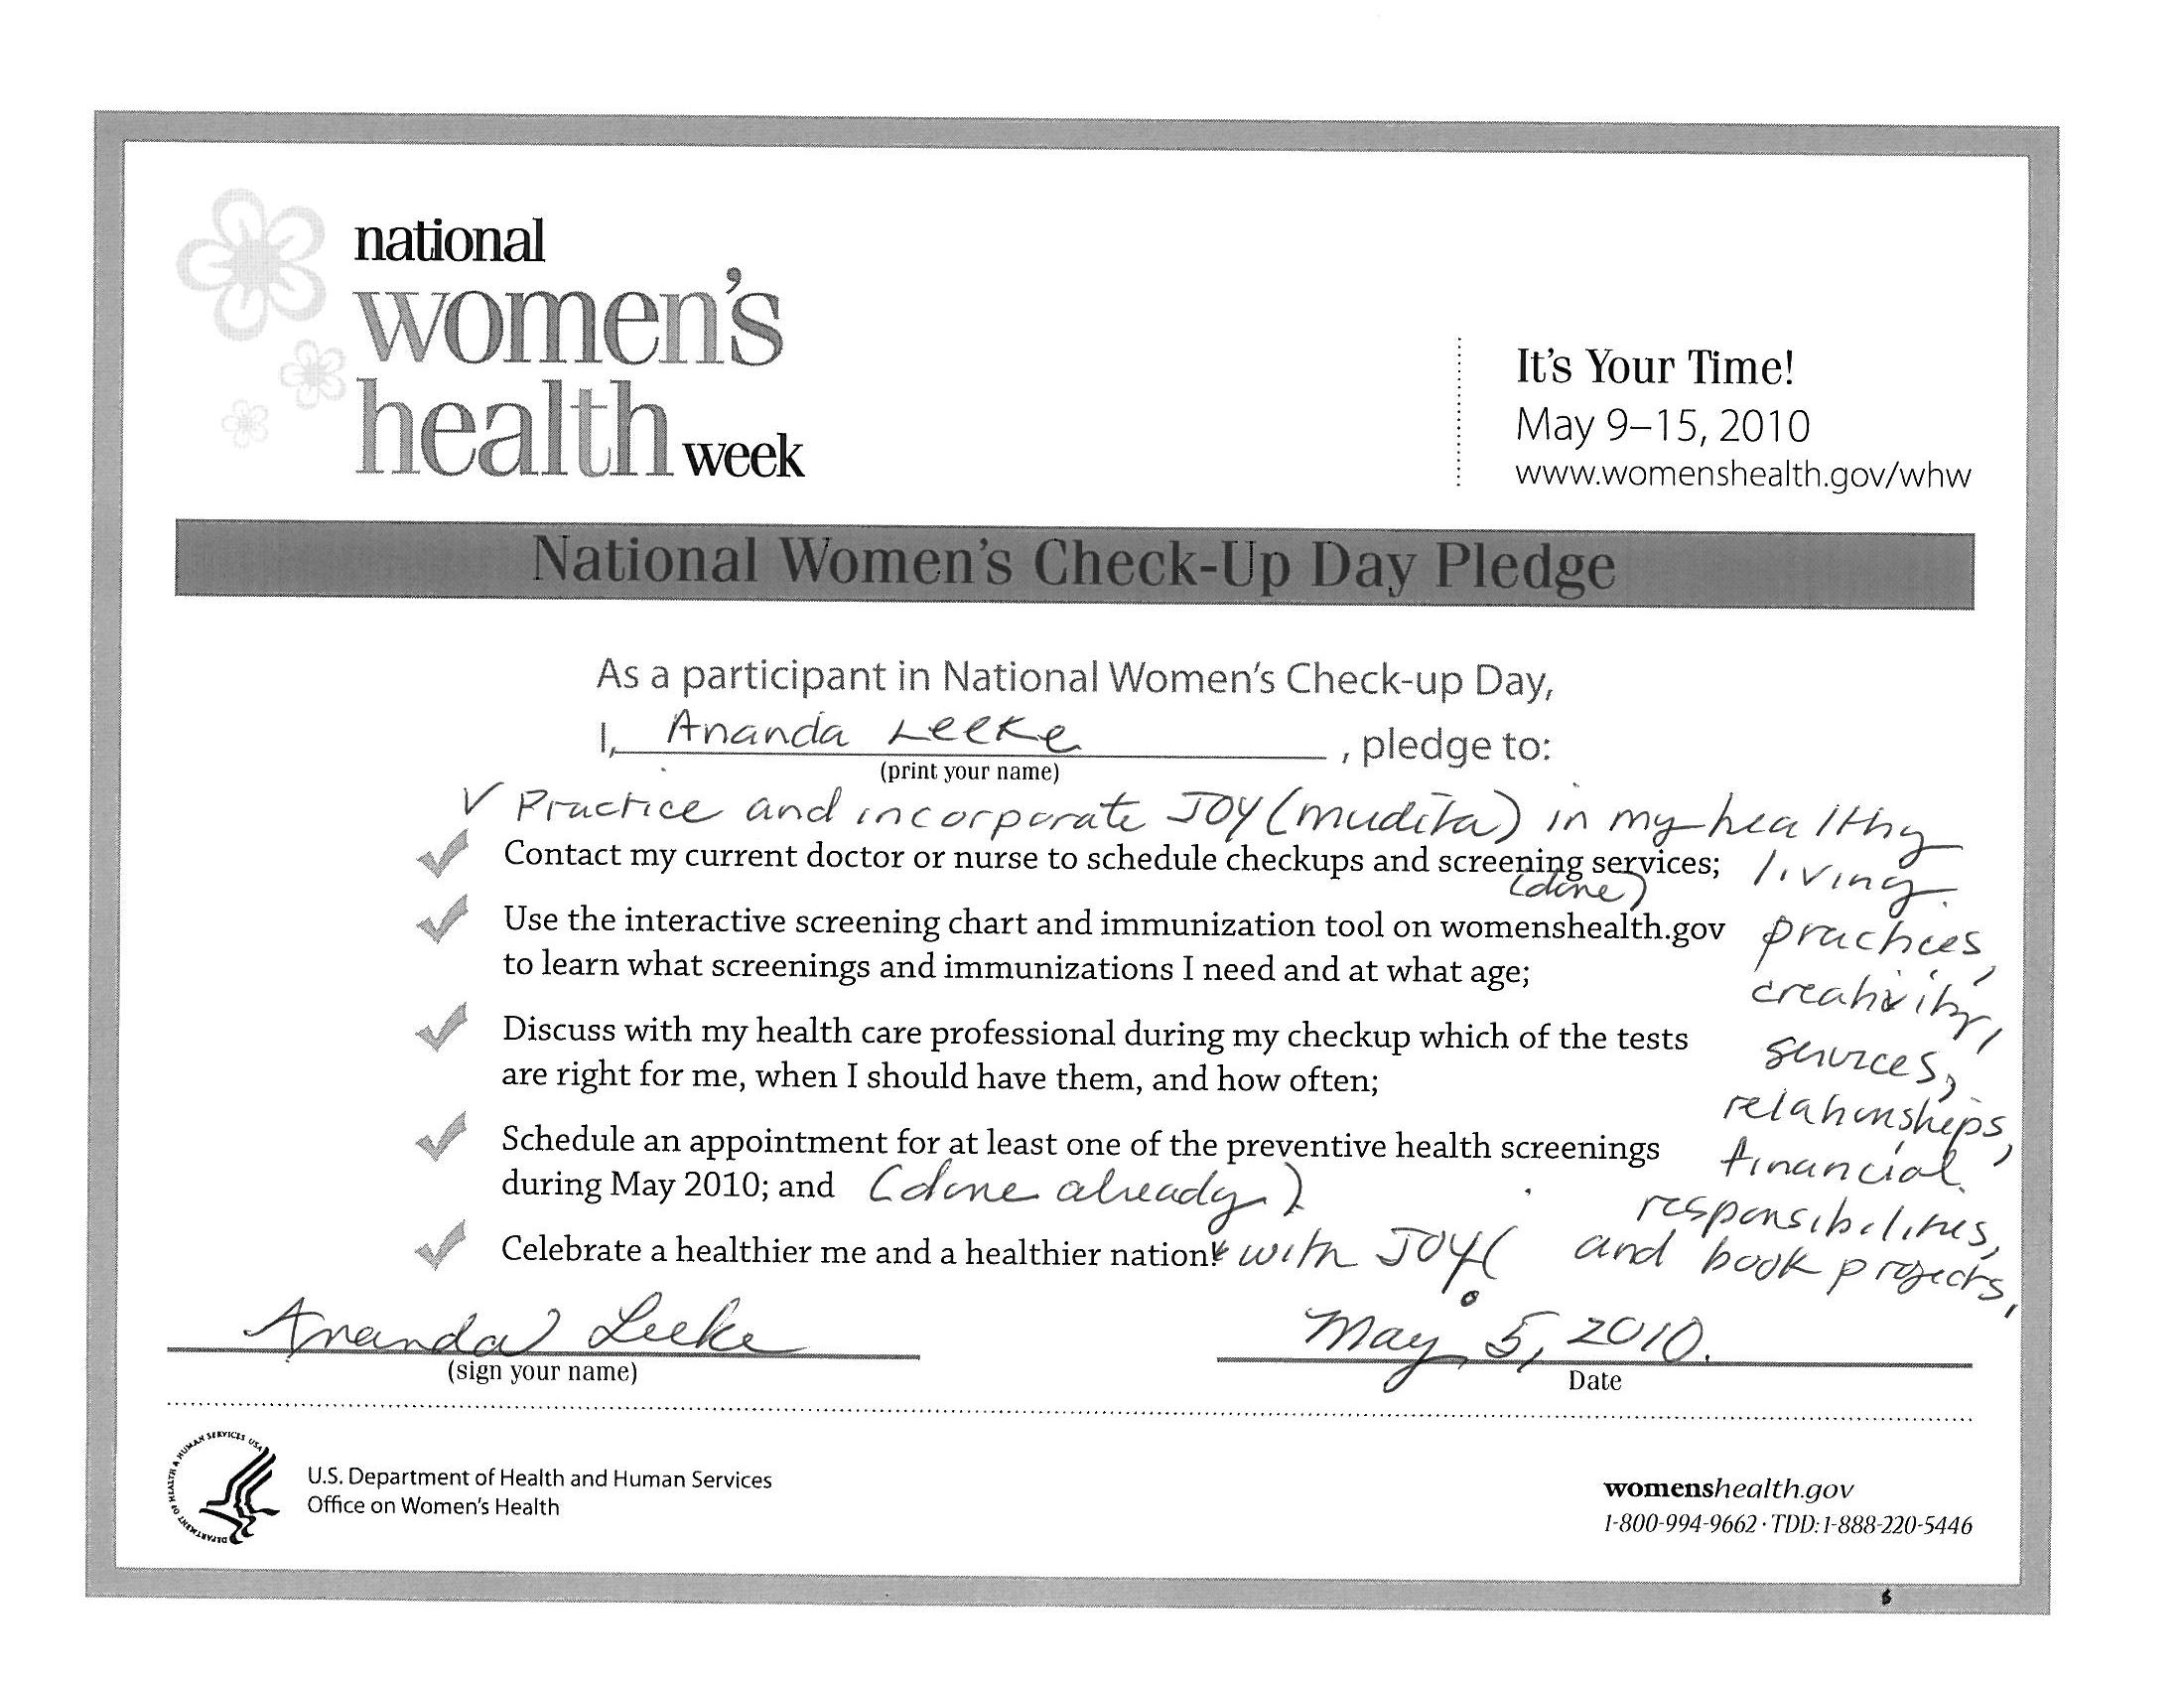 Ananda kicks off National Women's Health Week early with her